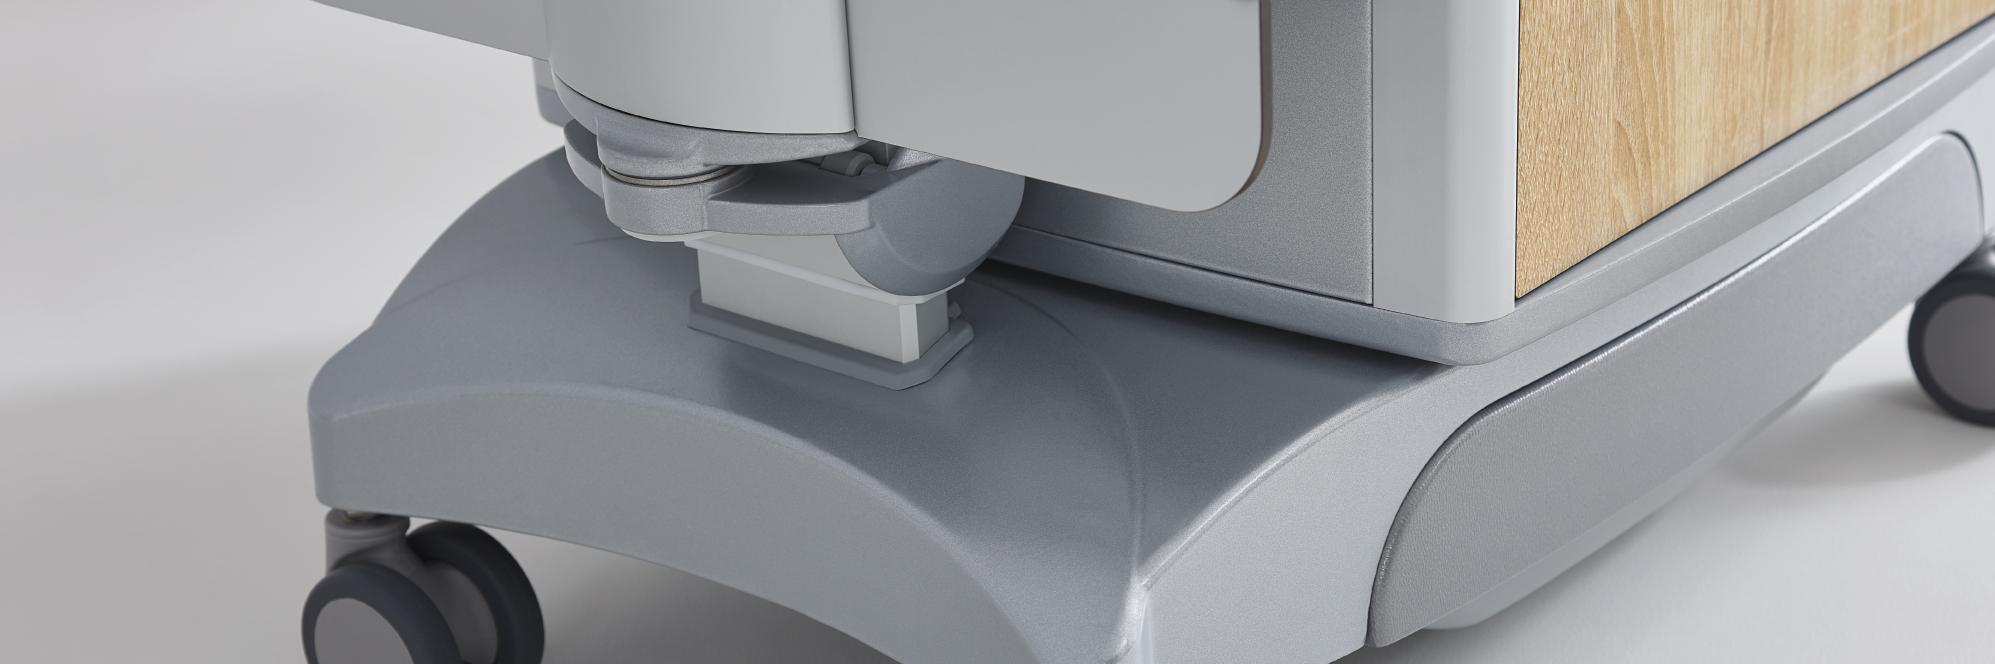 Double castors on the Vitano bedside cabinet